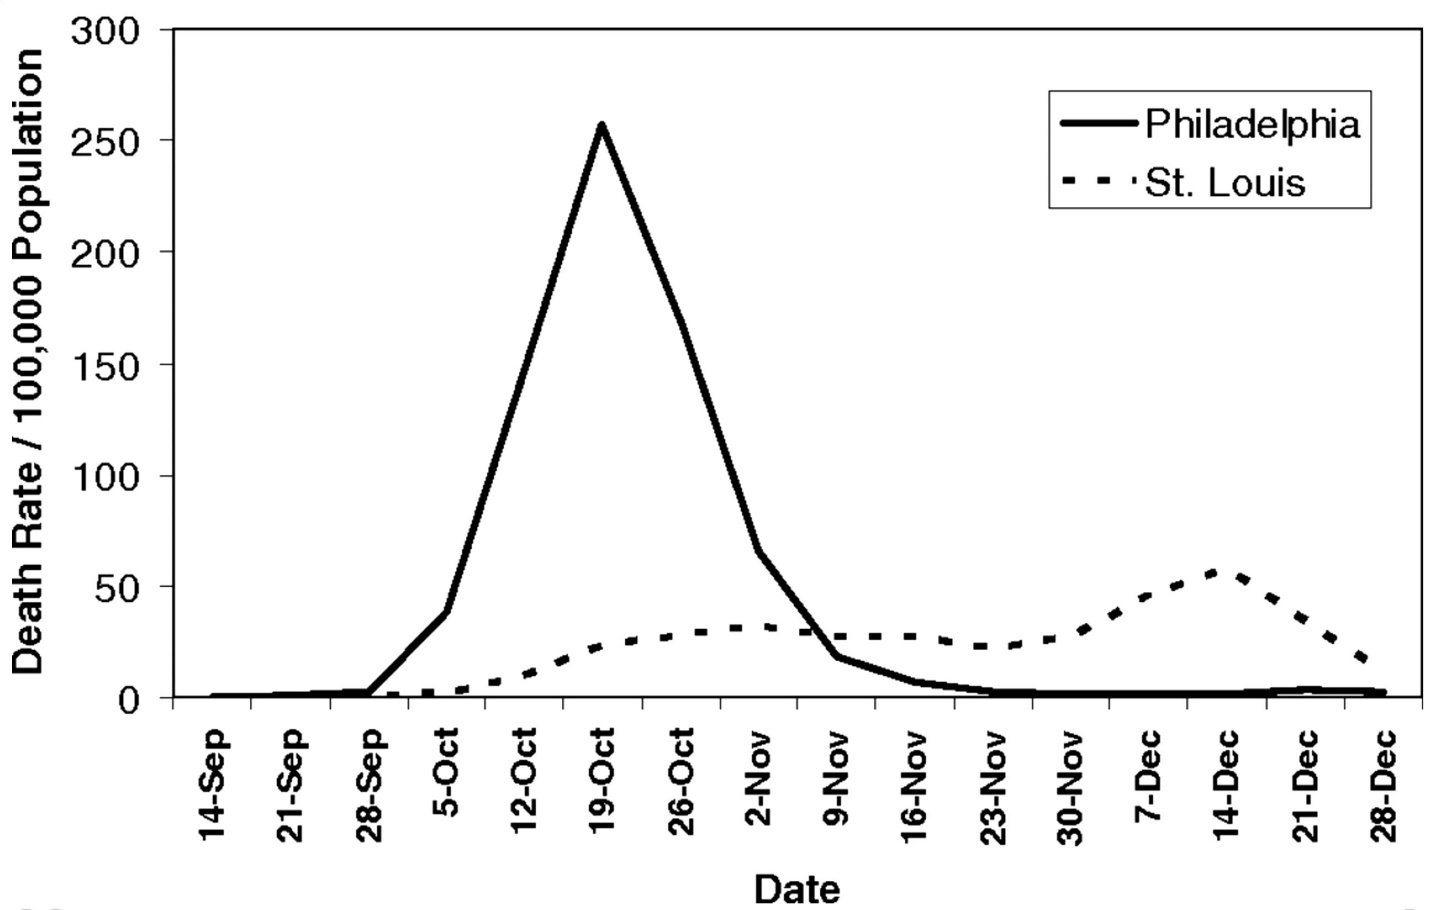 Impact of differing responses to the 1918 Flu pandemic